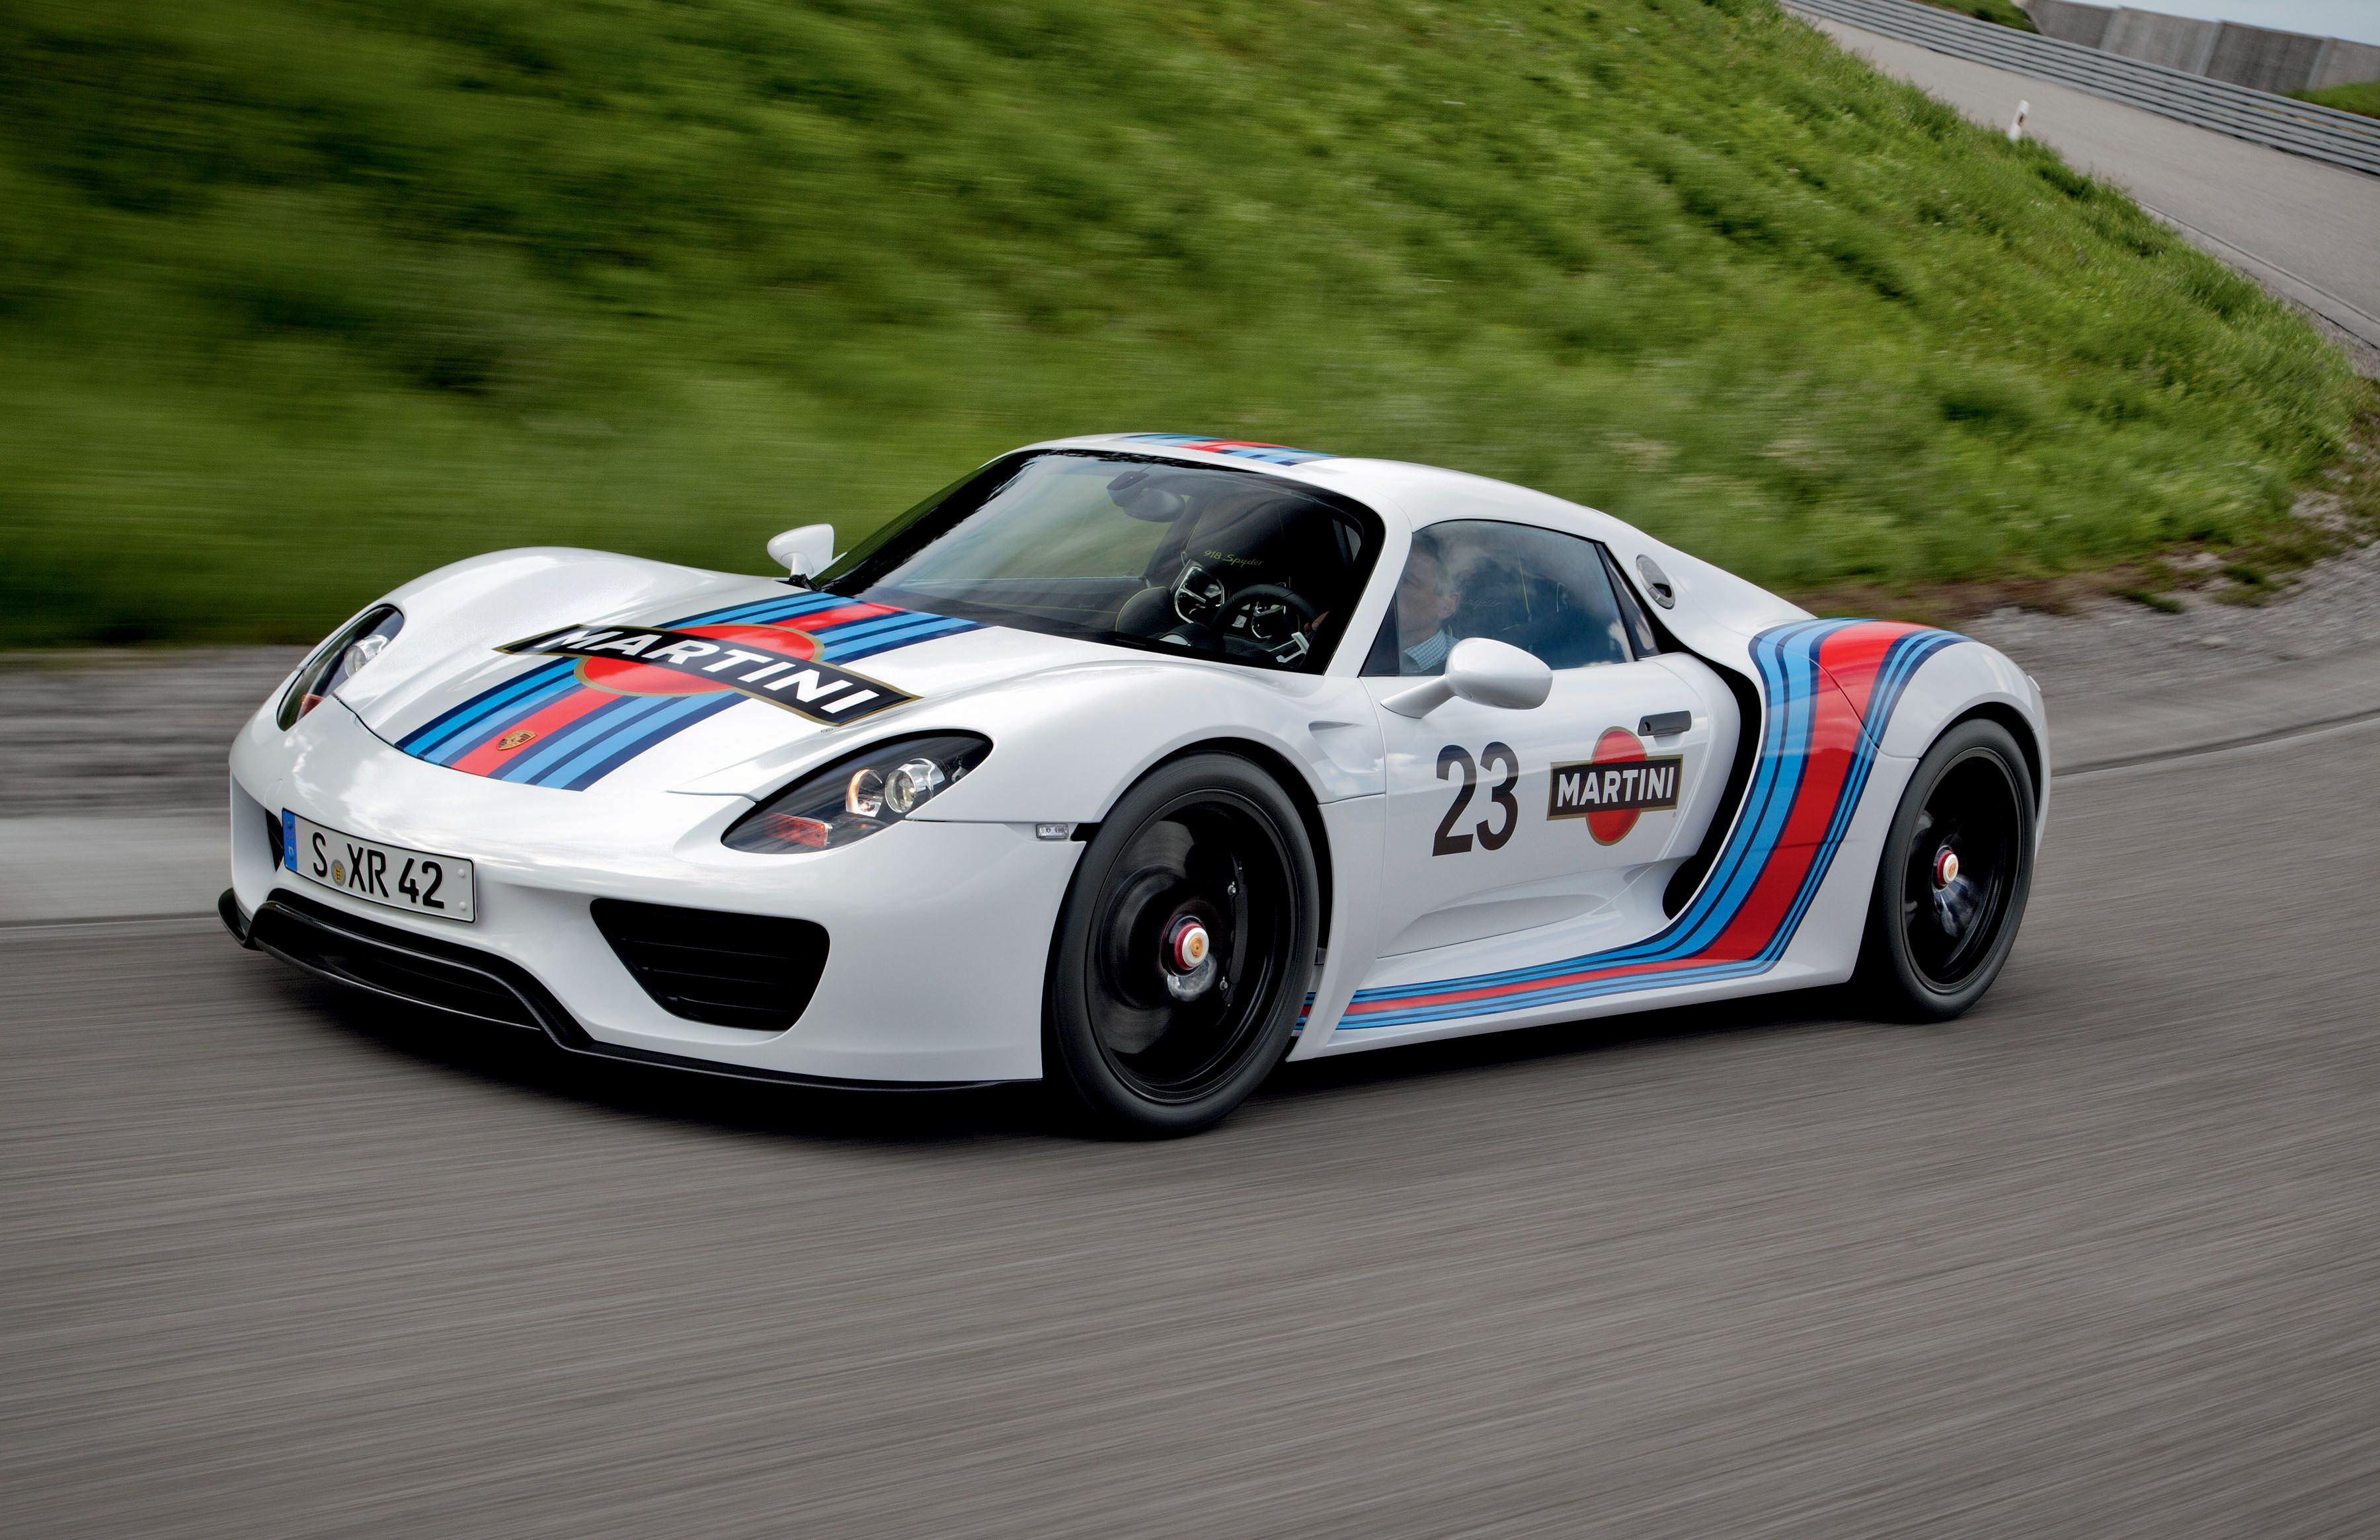 Cars With Martini Livery, Ranked   Porsche 918, Cheap race cars ...